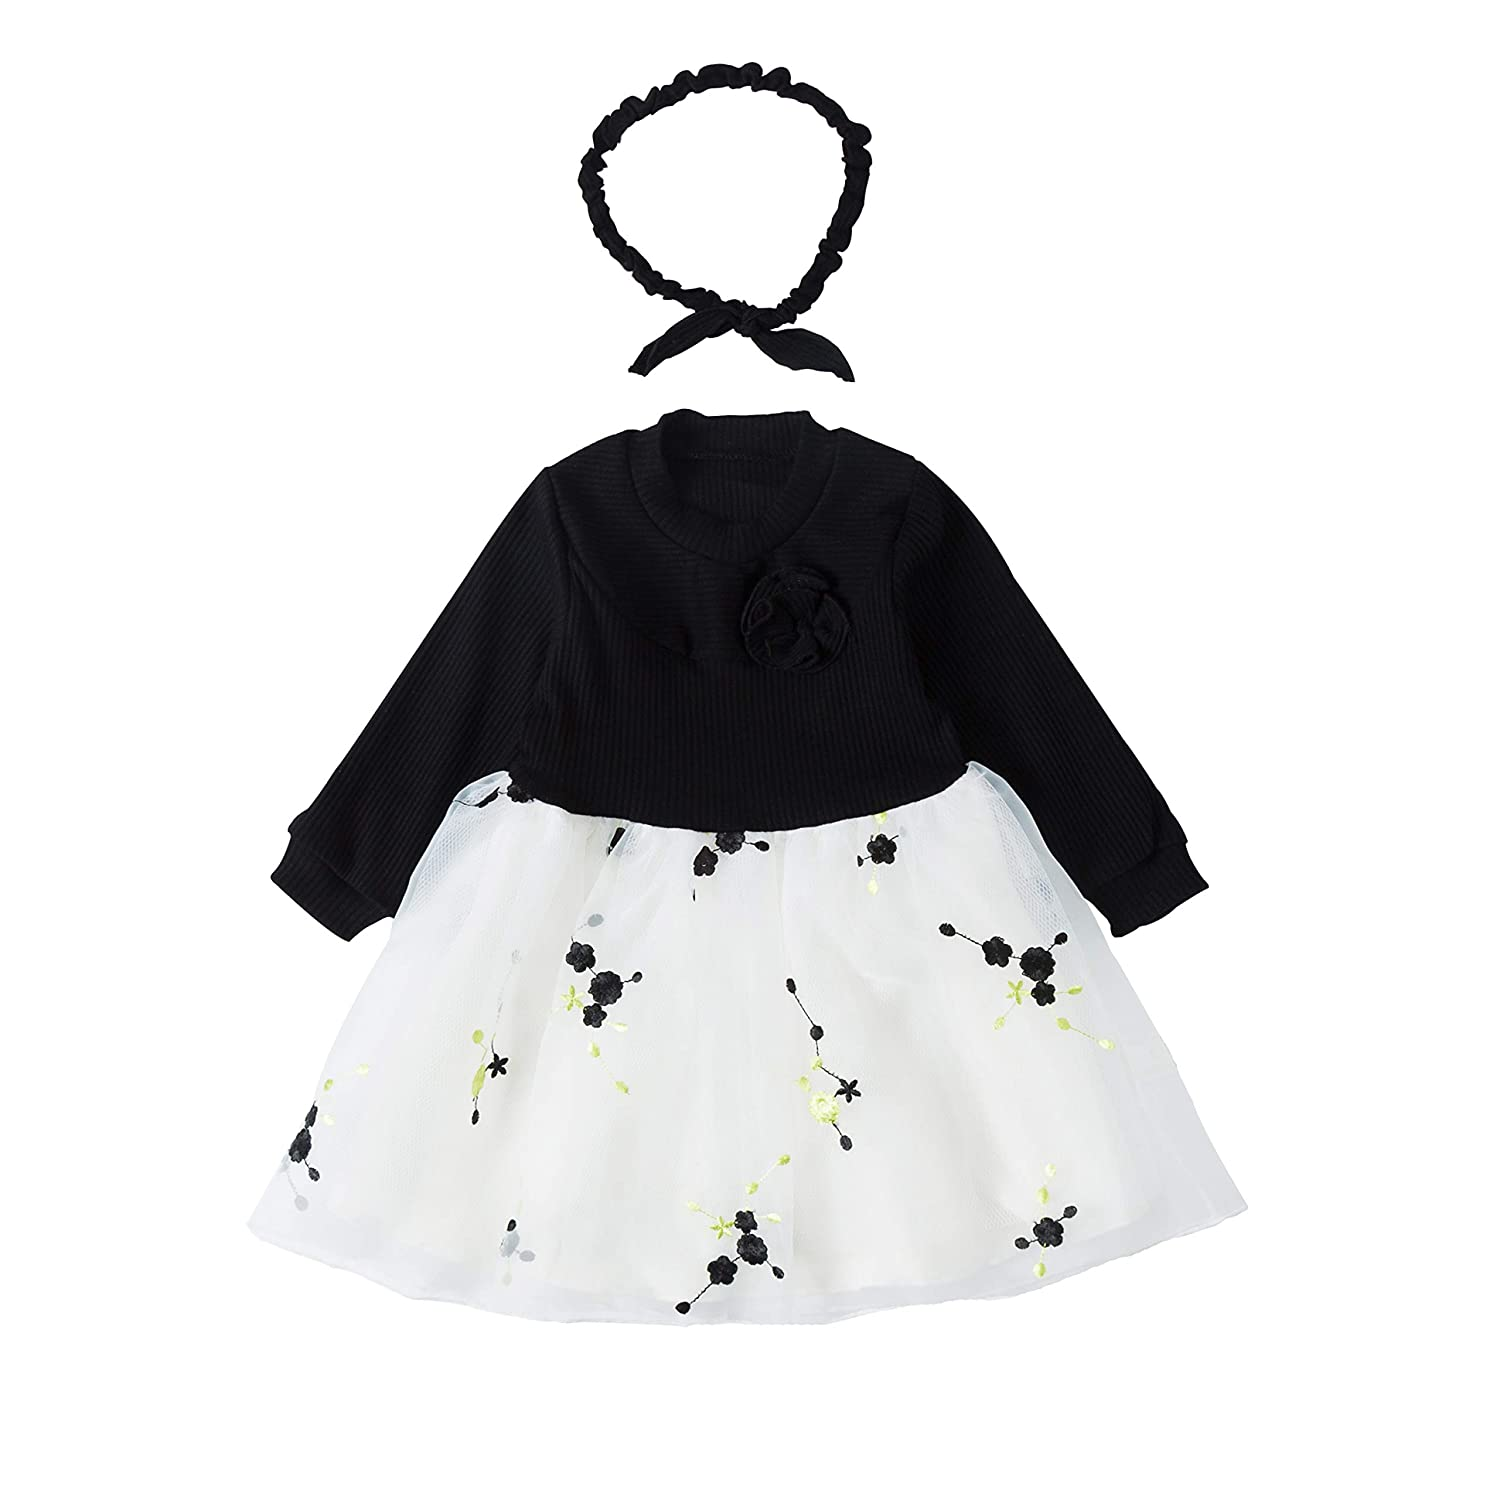 moxxbaby Baby Girls Toddler Dress Outfits Tutu Dresses Long Sleeve Cotton Flower Dress for Infant Babys